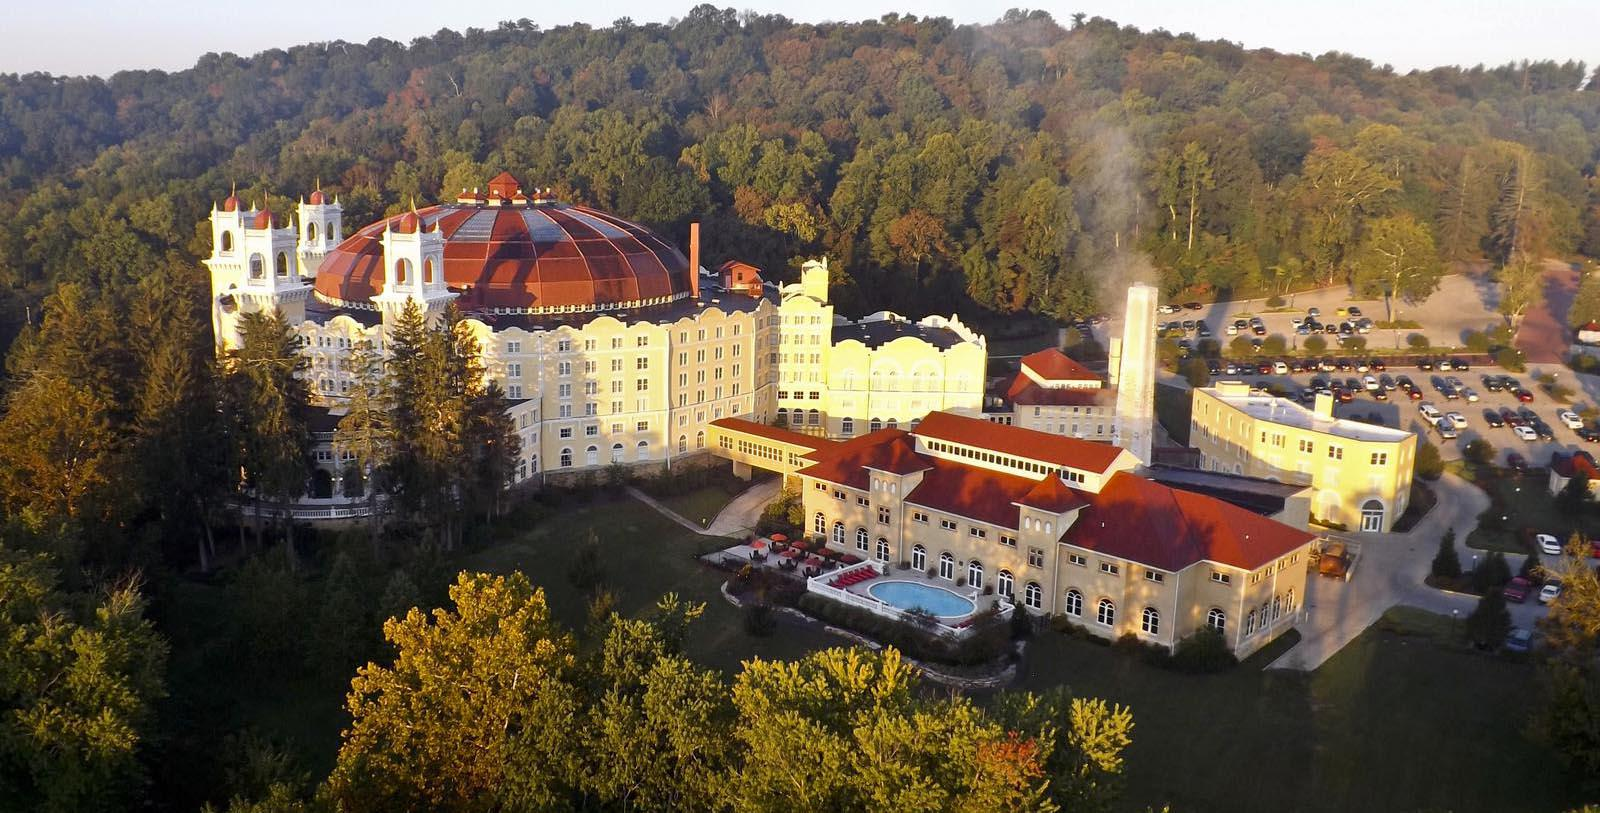 Freaky Nights at the French Lick Springs Hotel in Indiana